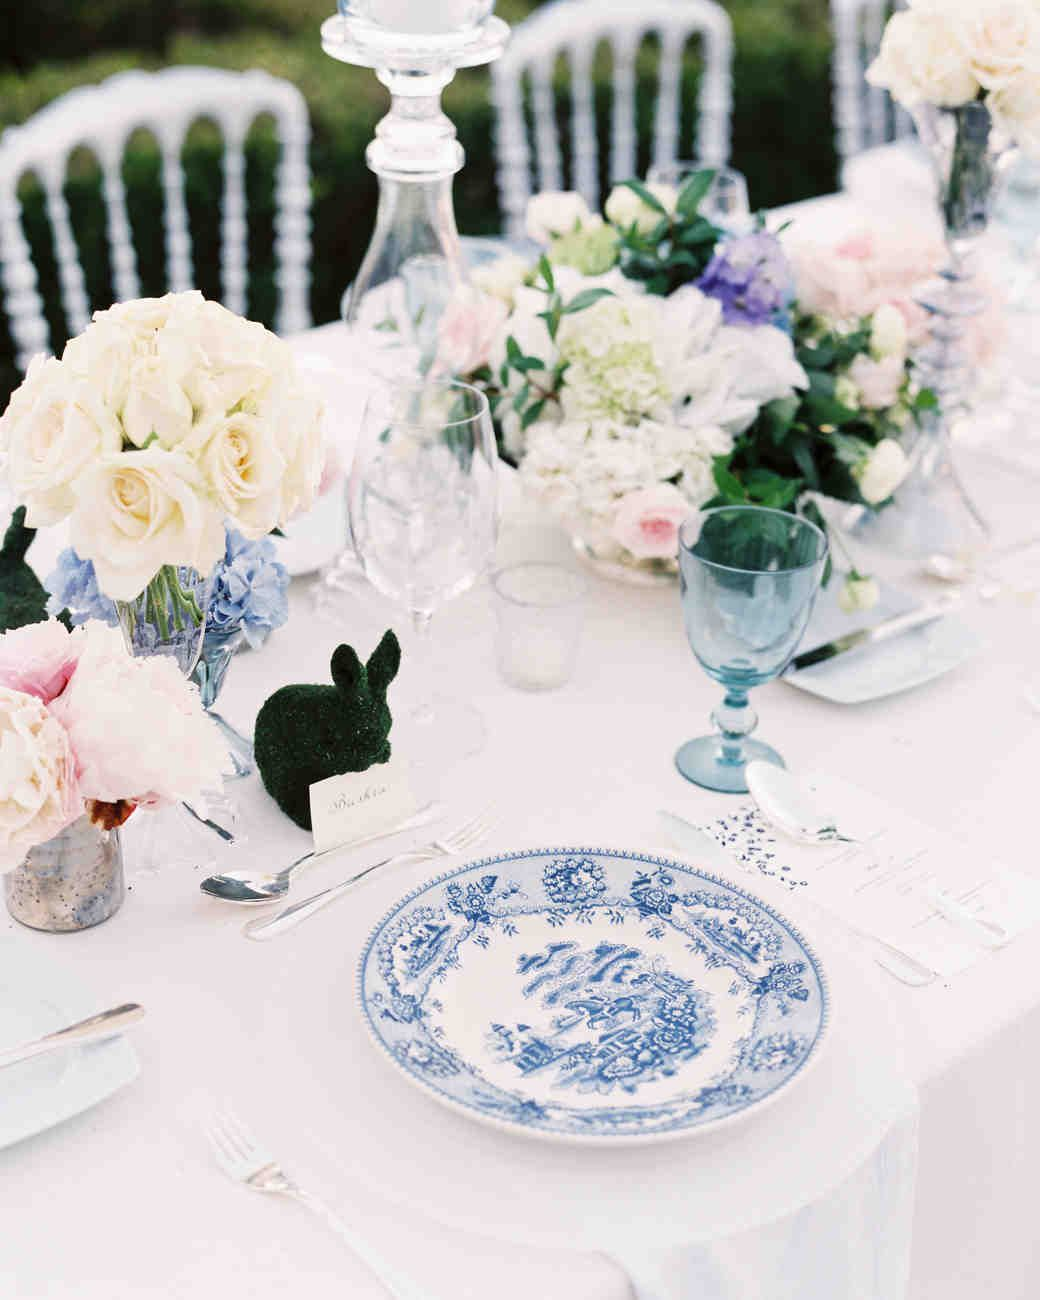 The Prettiest Place Settings from Real Celebrations | Martha stewart ...